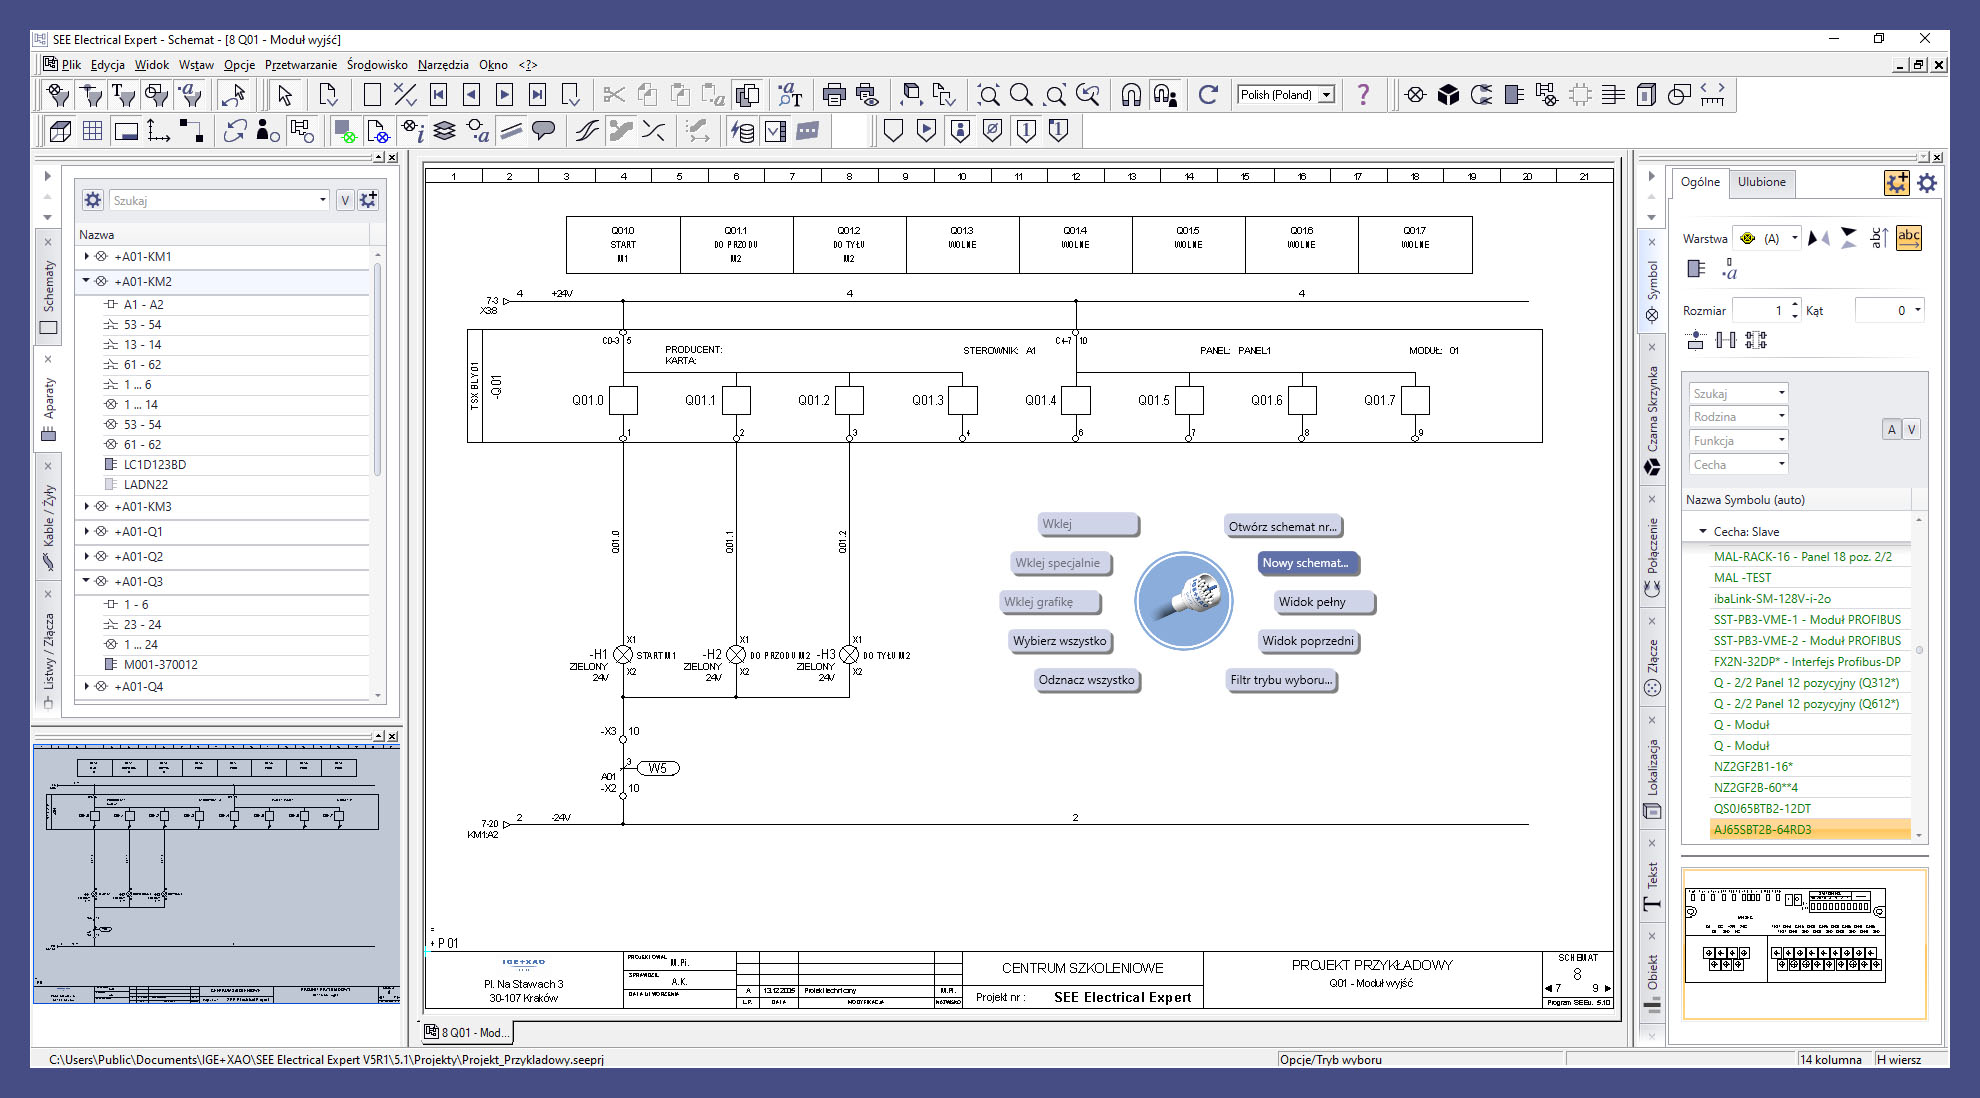 SEE Electrical Expert V5R1 visual